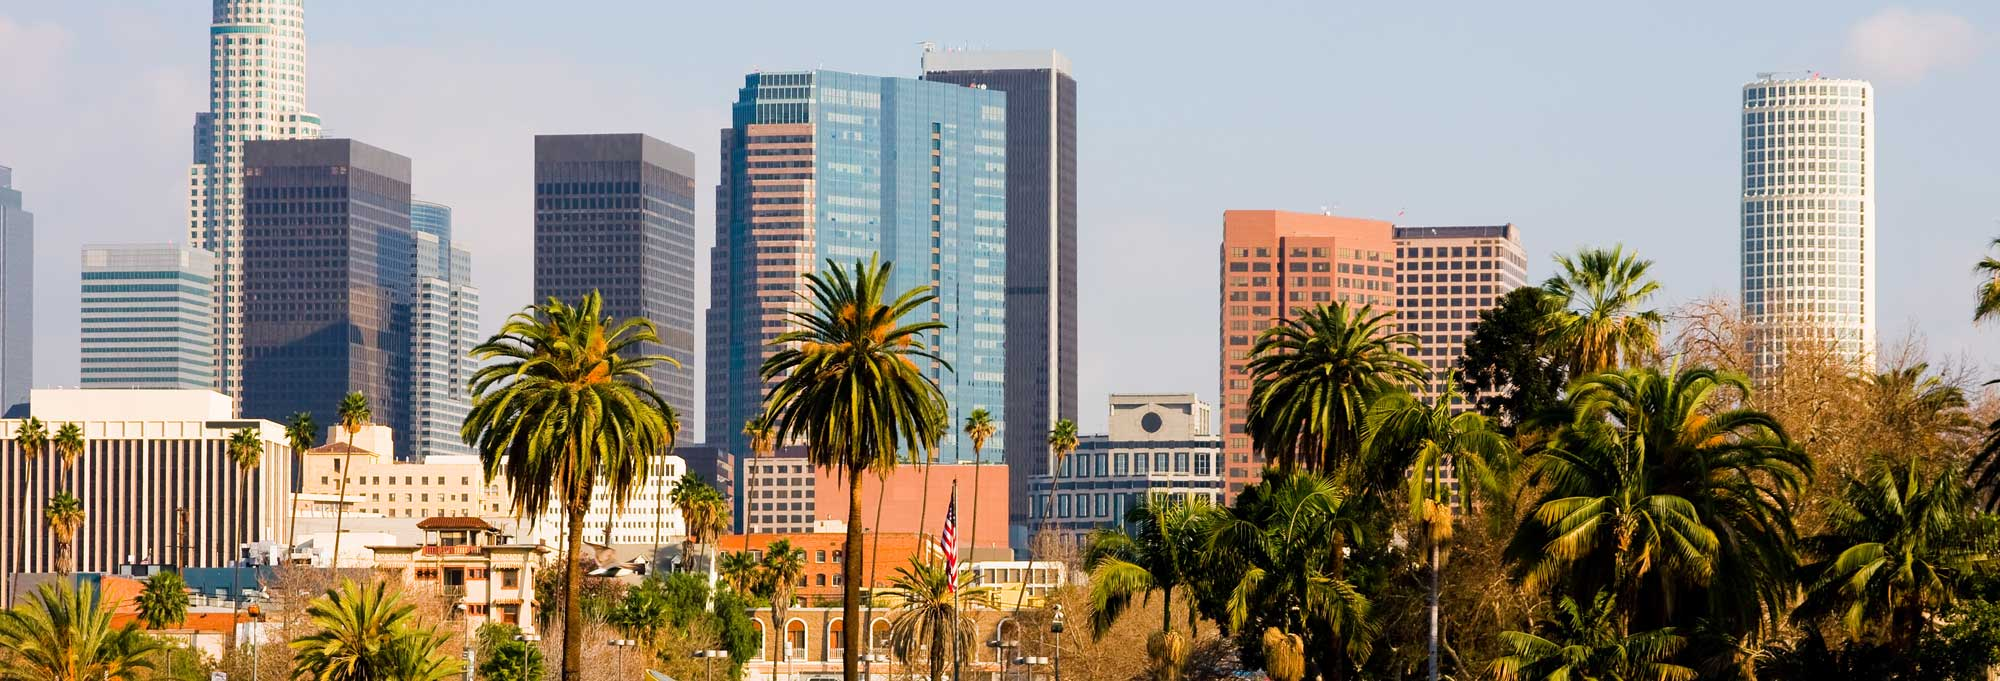 Los Angeles Banner Image 1